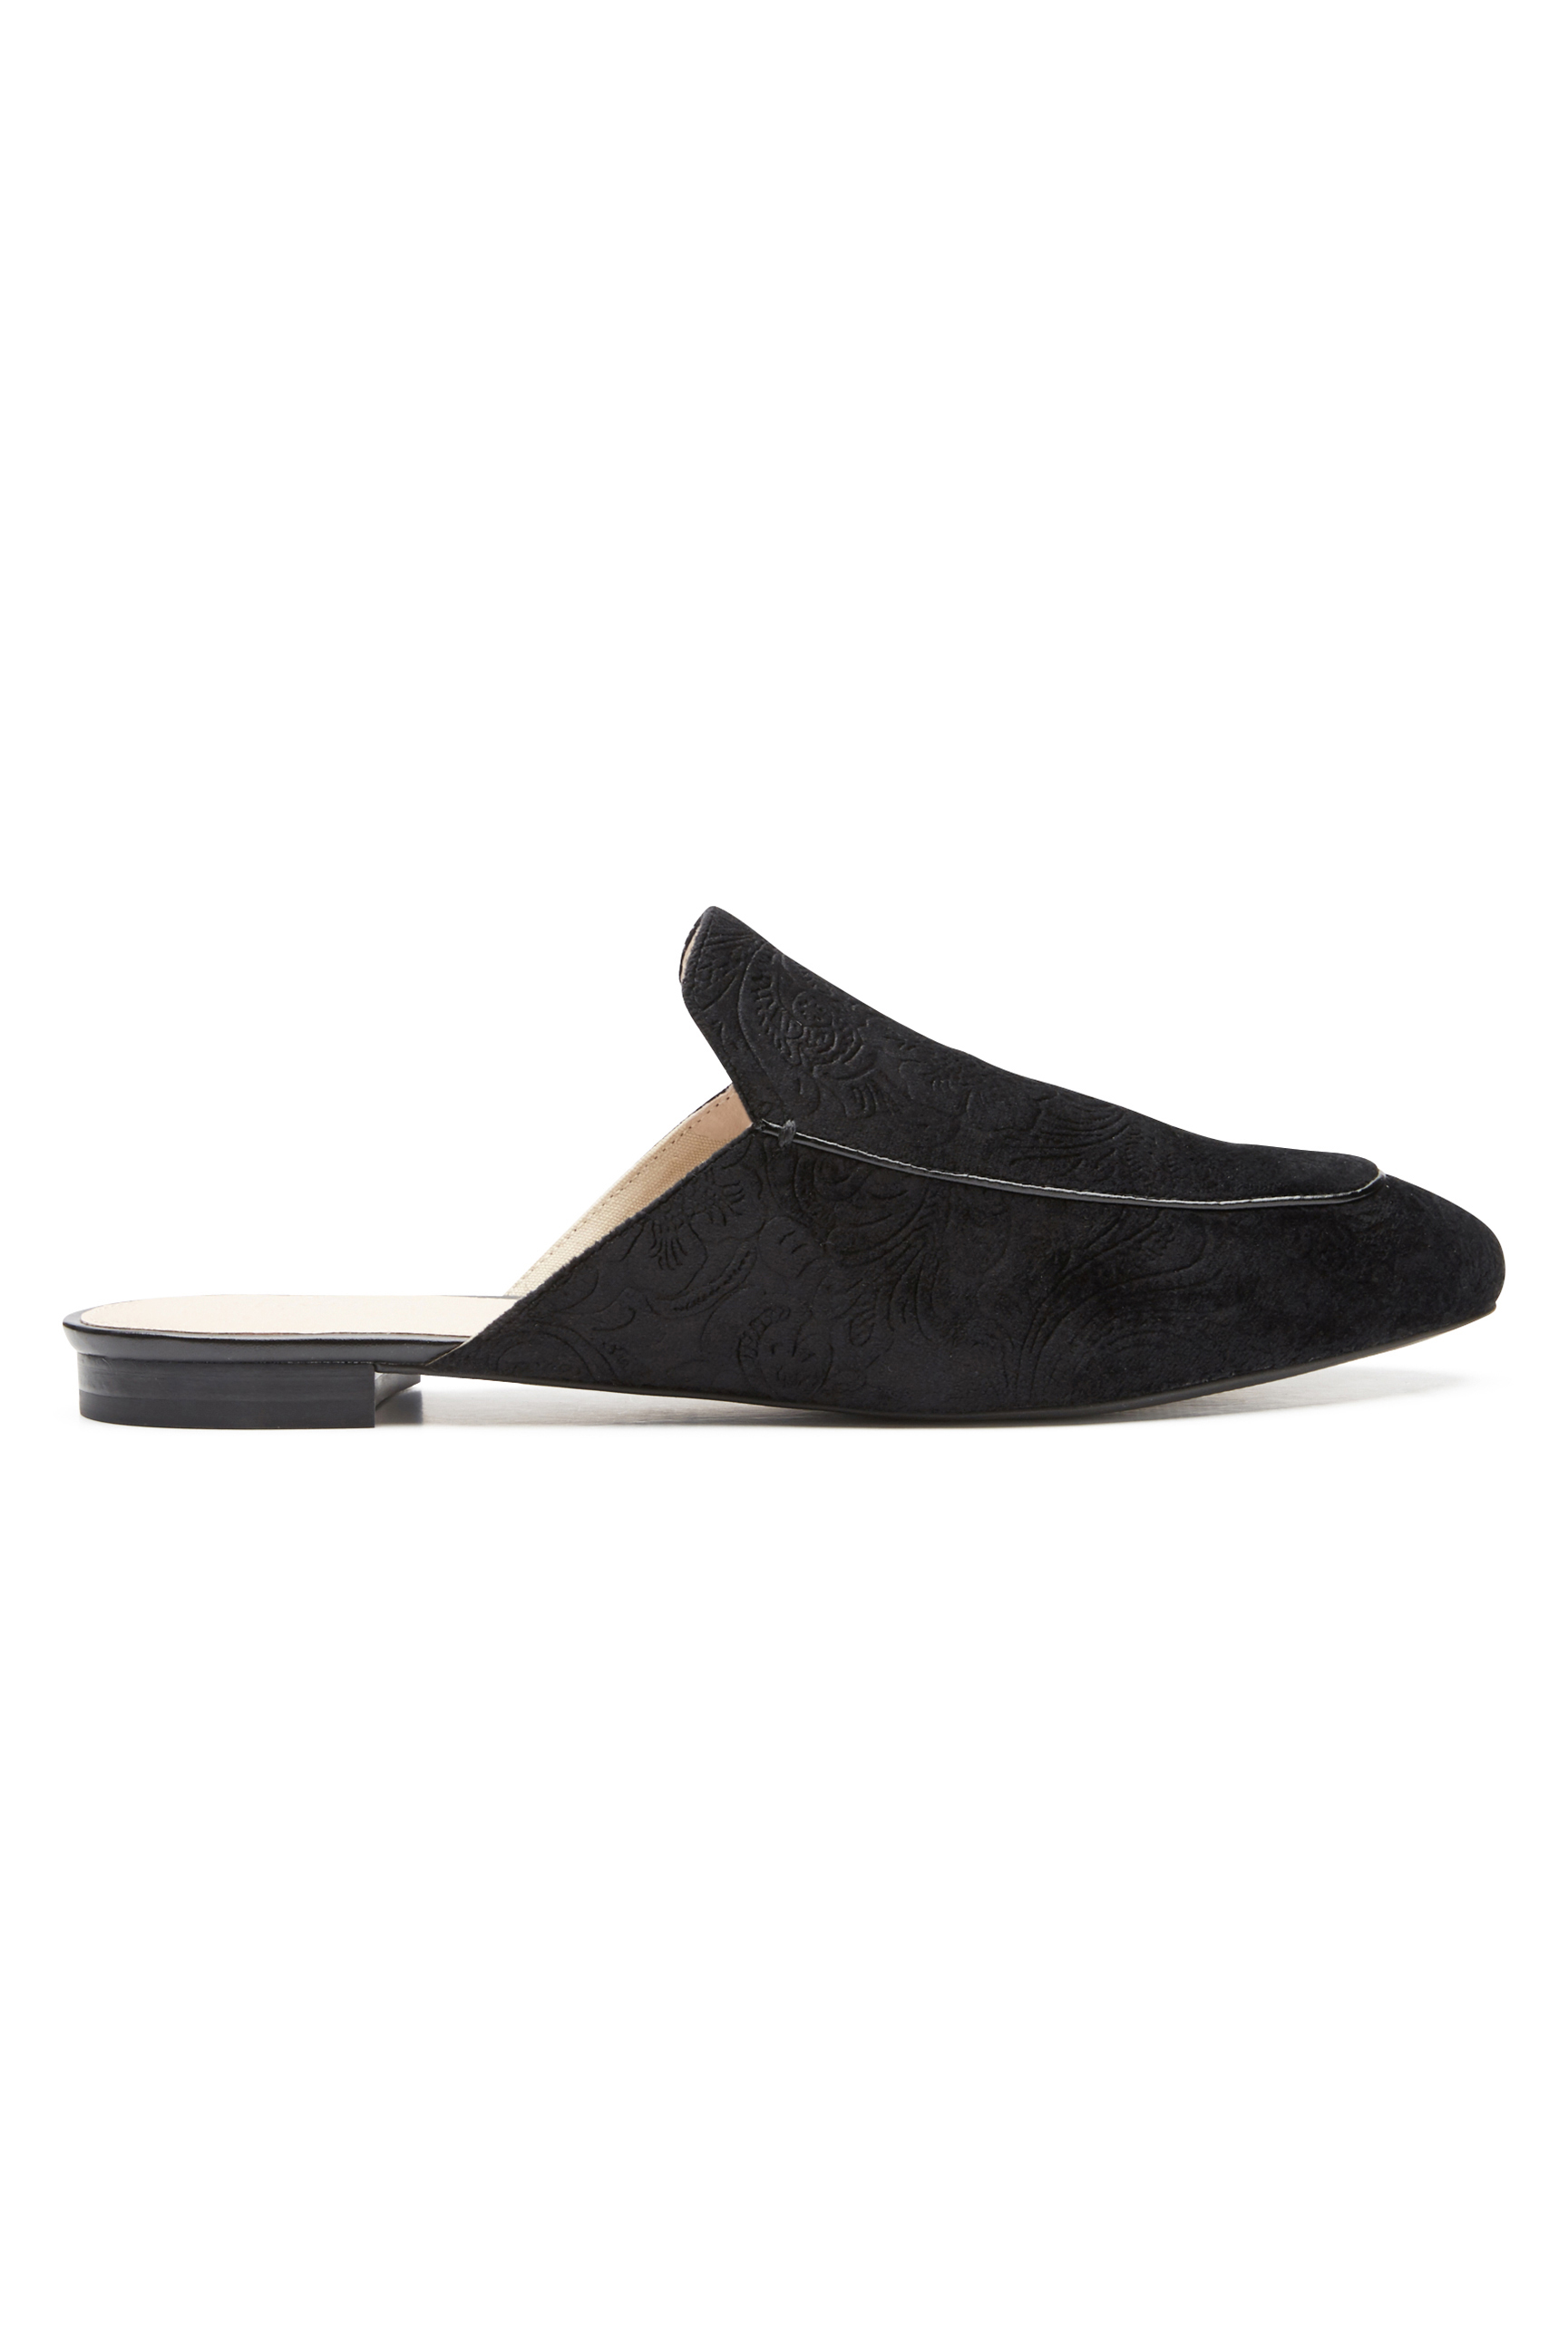 60209007_Witchery Renata Slide, $159.90